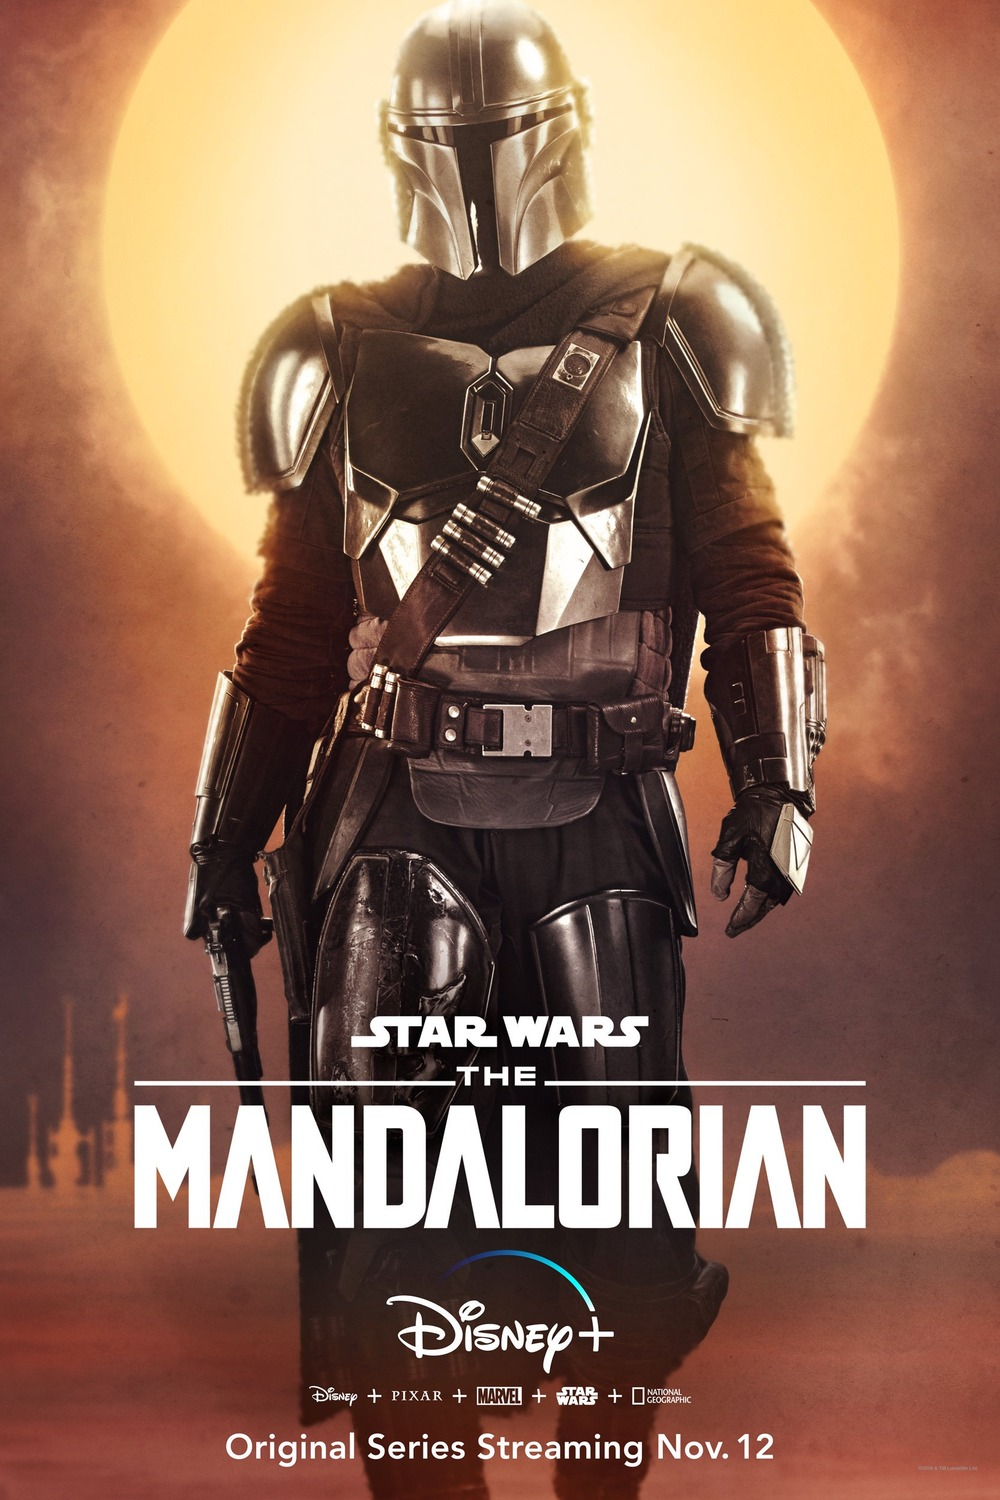 The Mandalorian official poster, season 1. Available on Disney Plus.